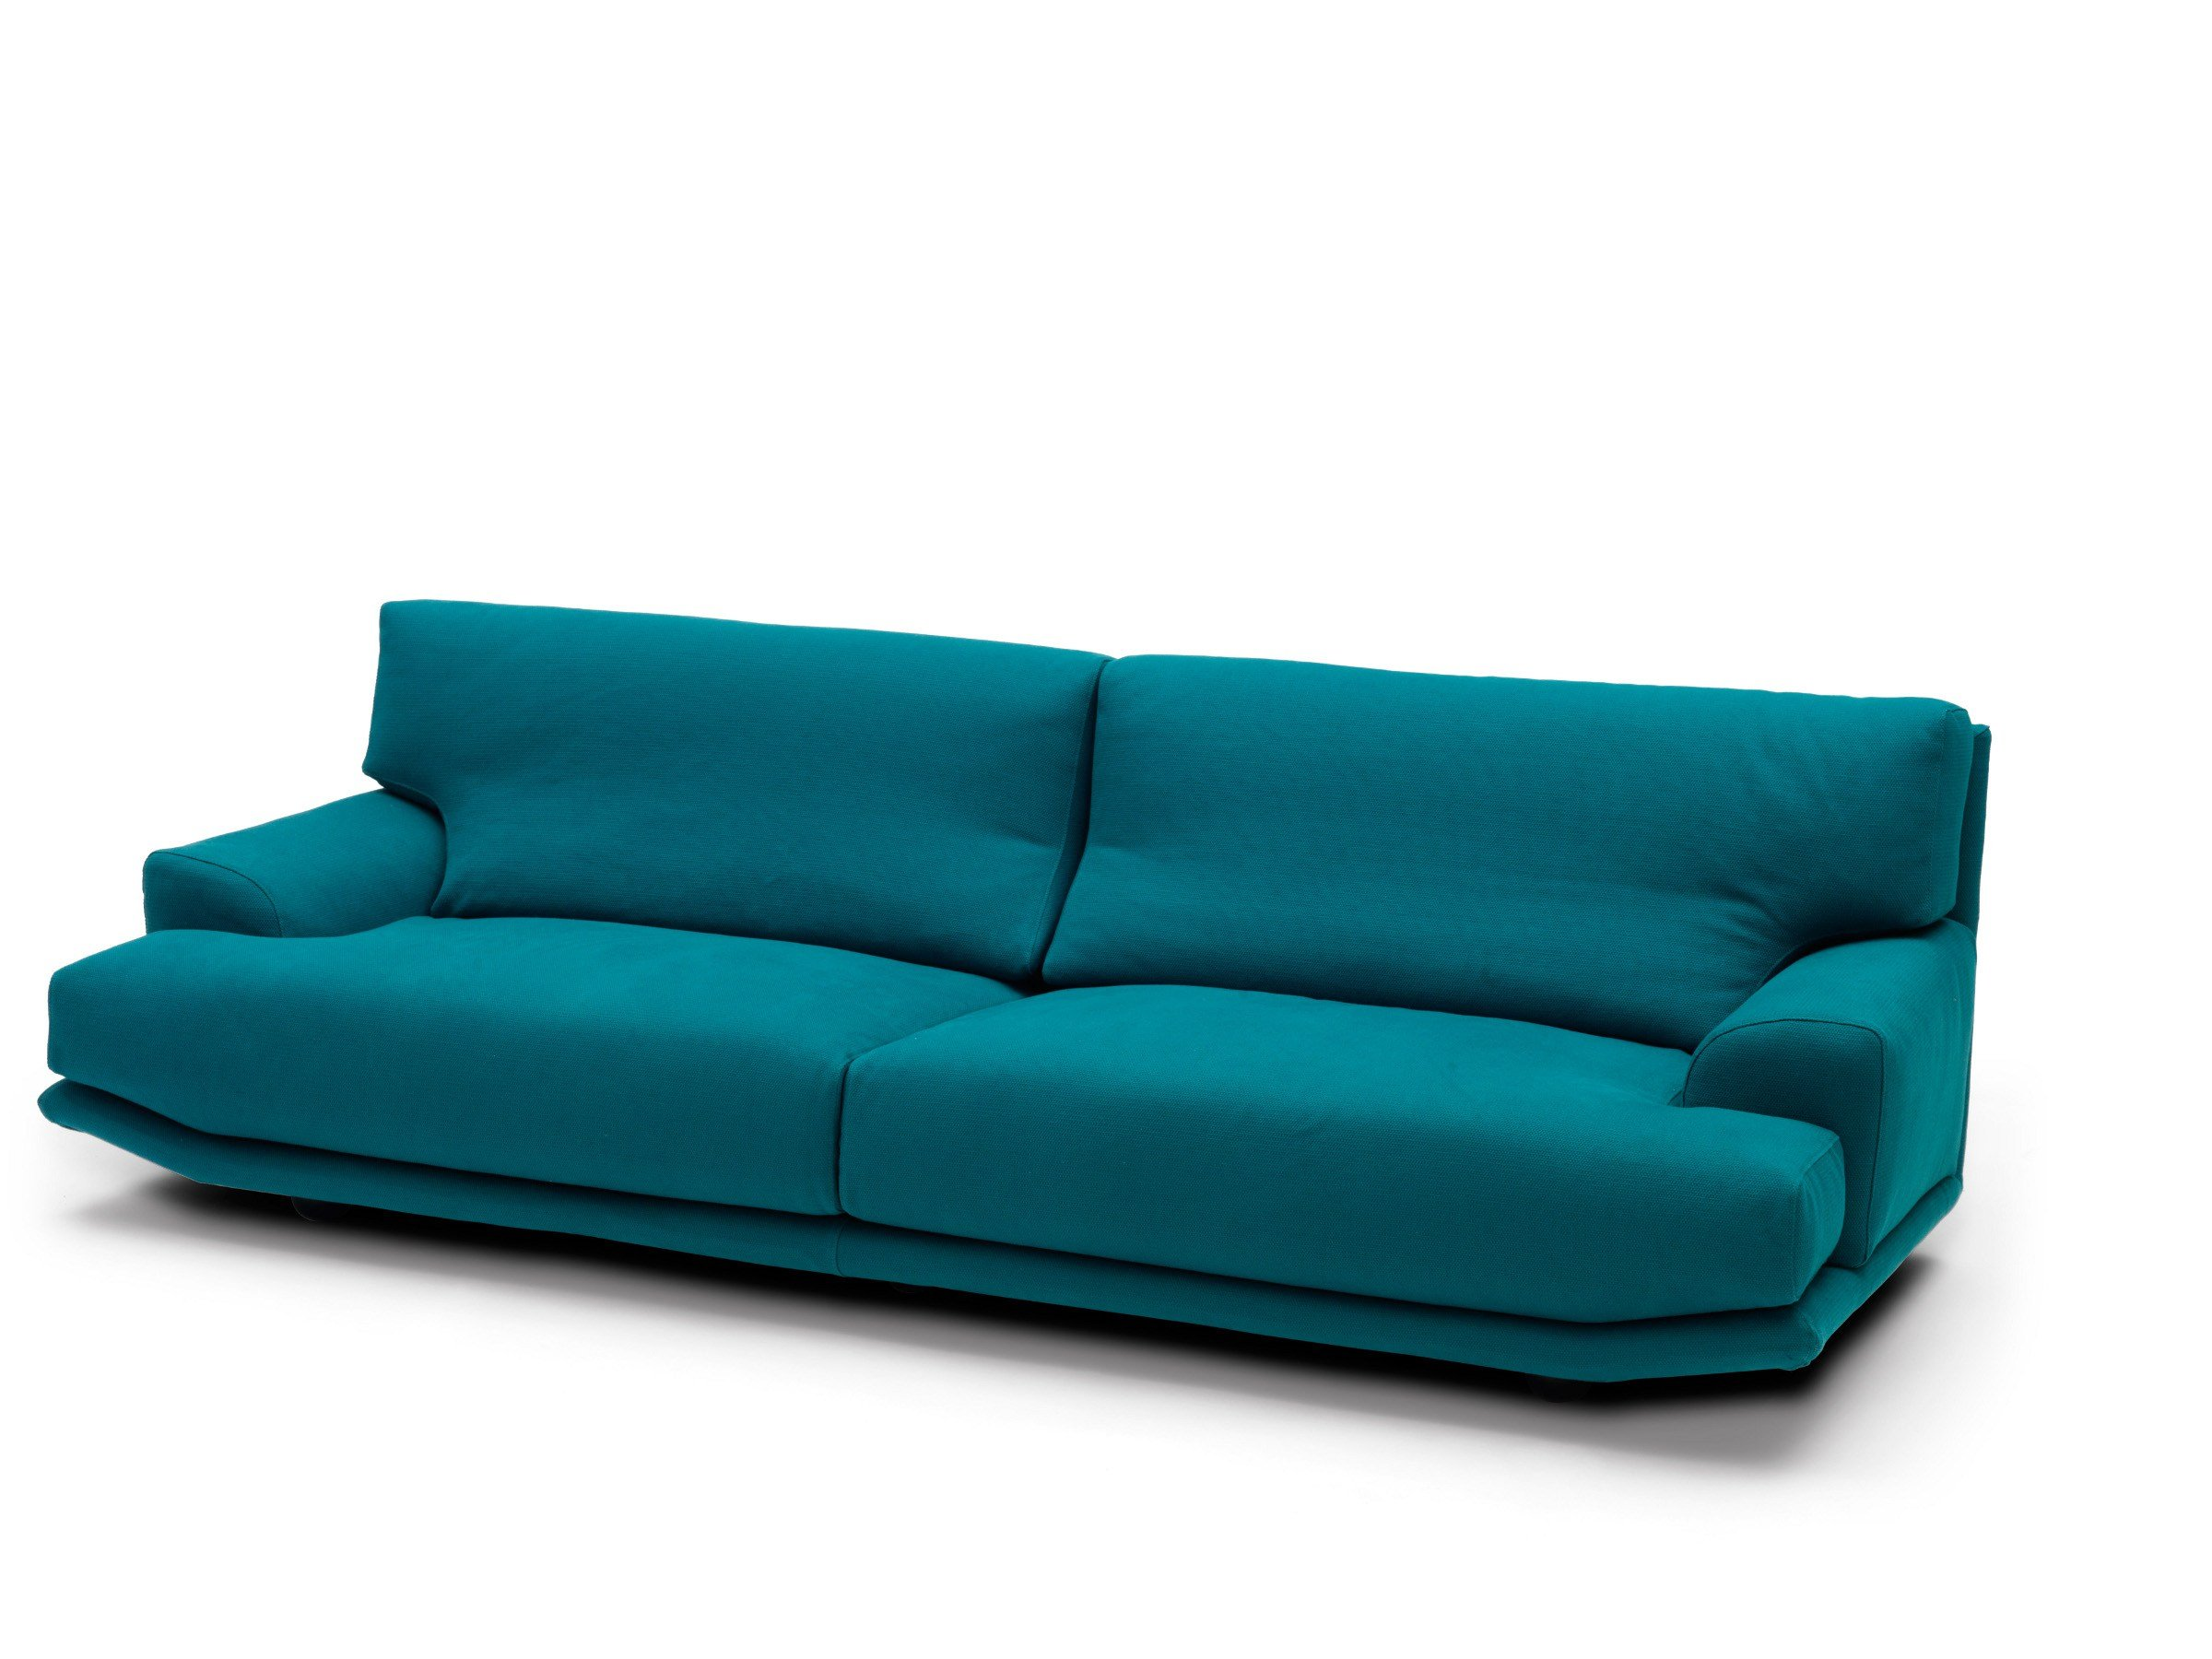 Sectional modular sofa BOSS By Giovannetti design Paolo Piva